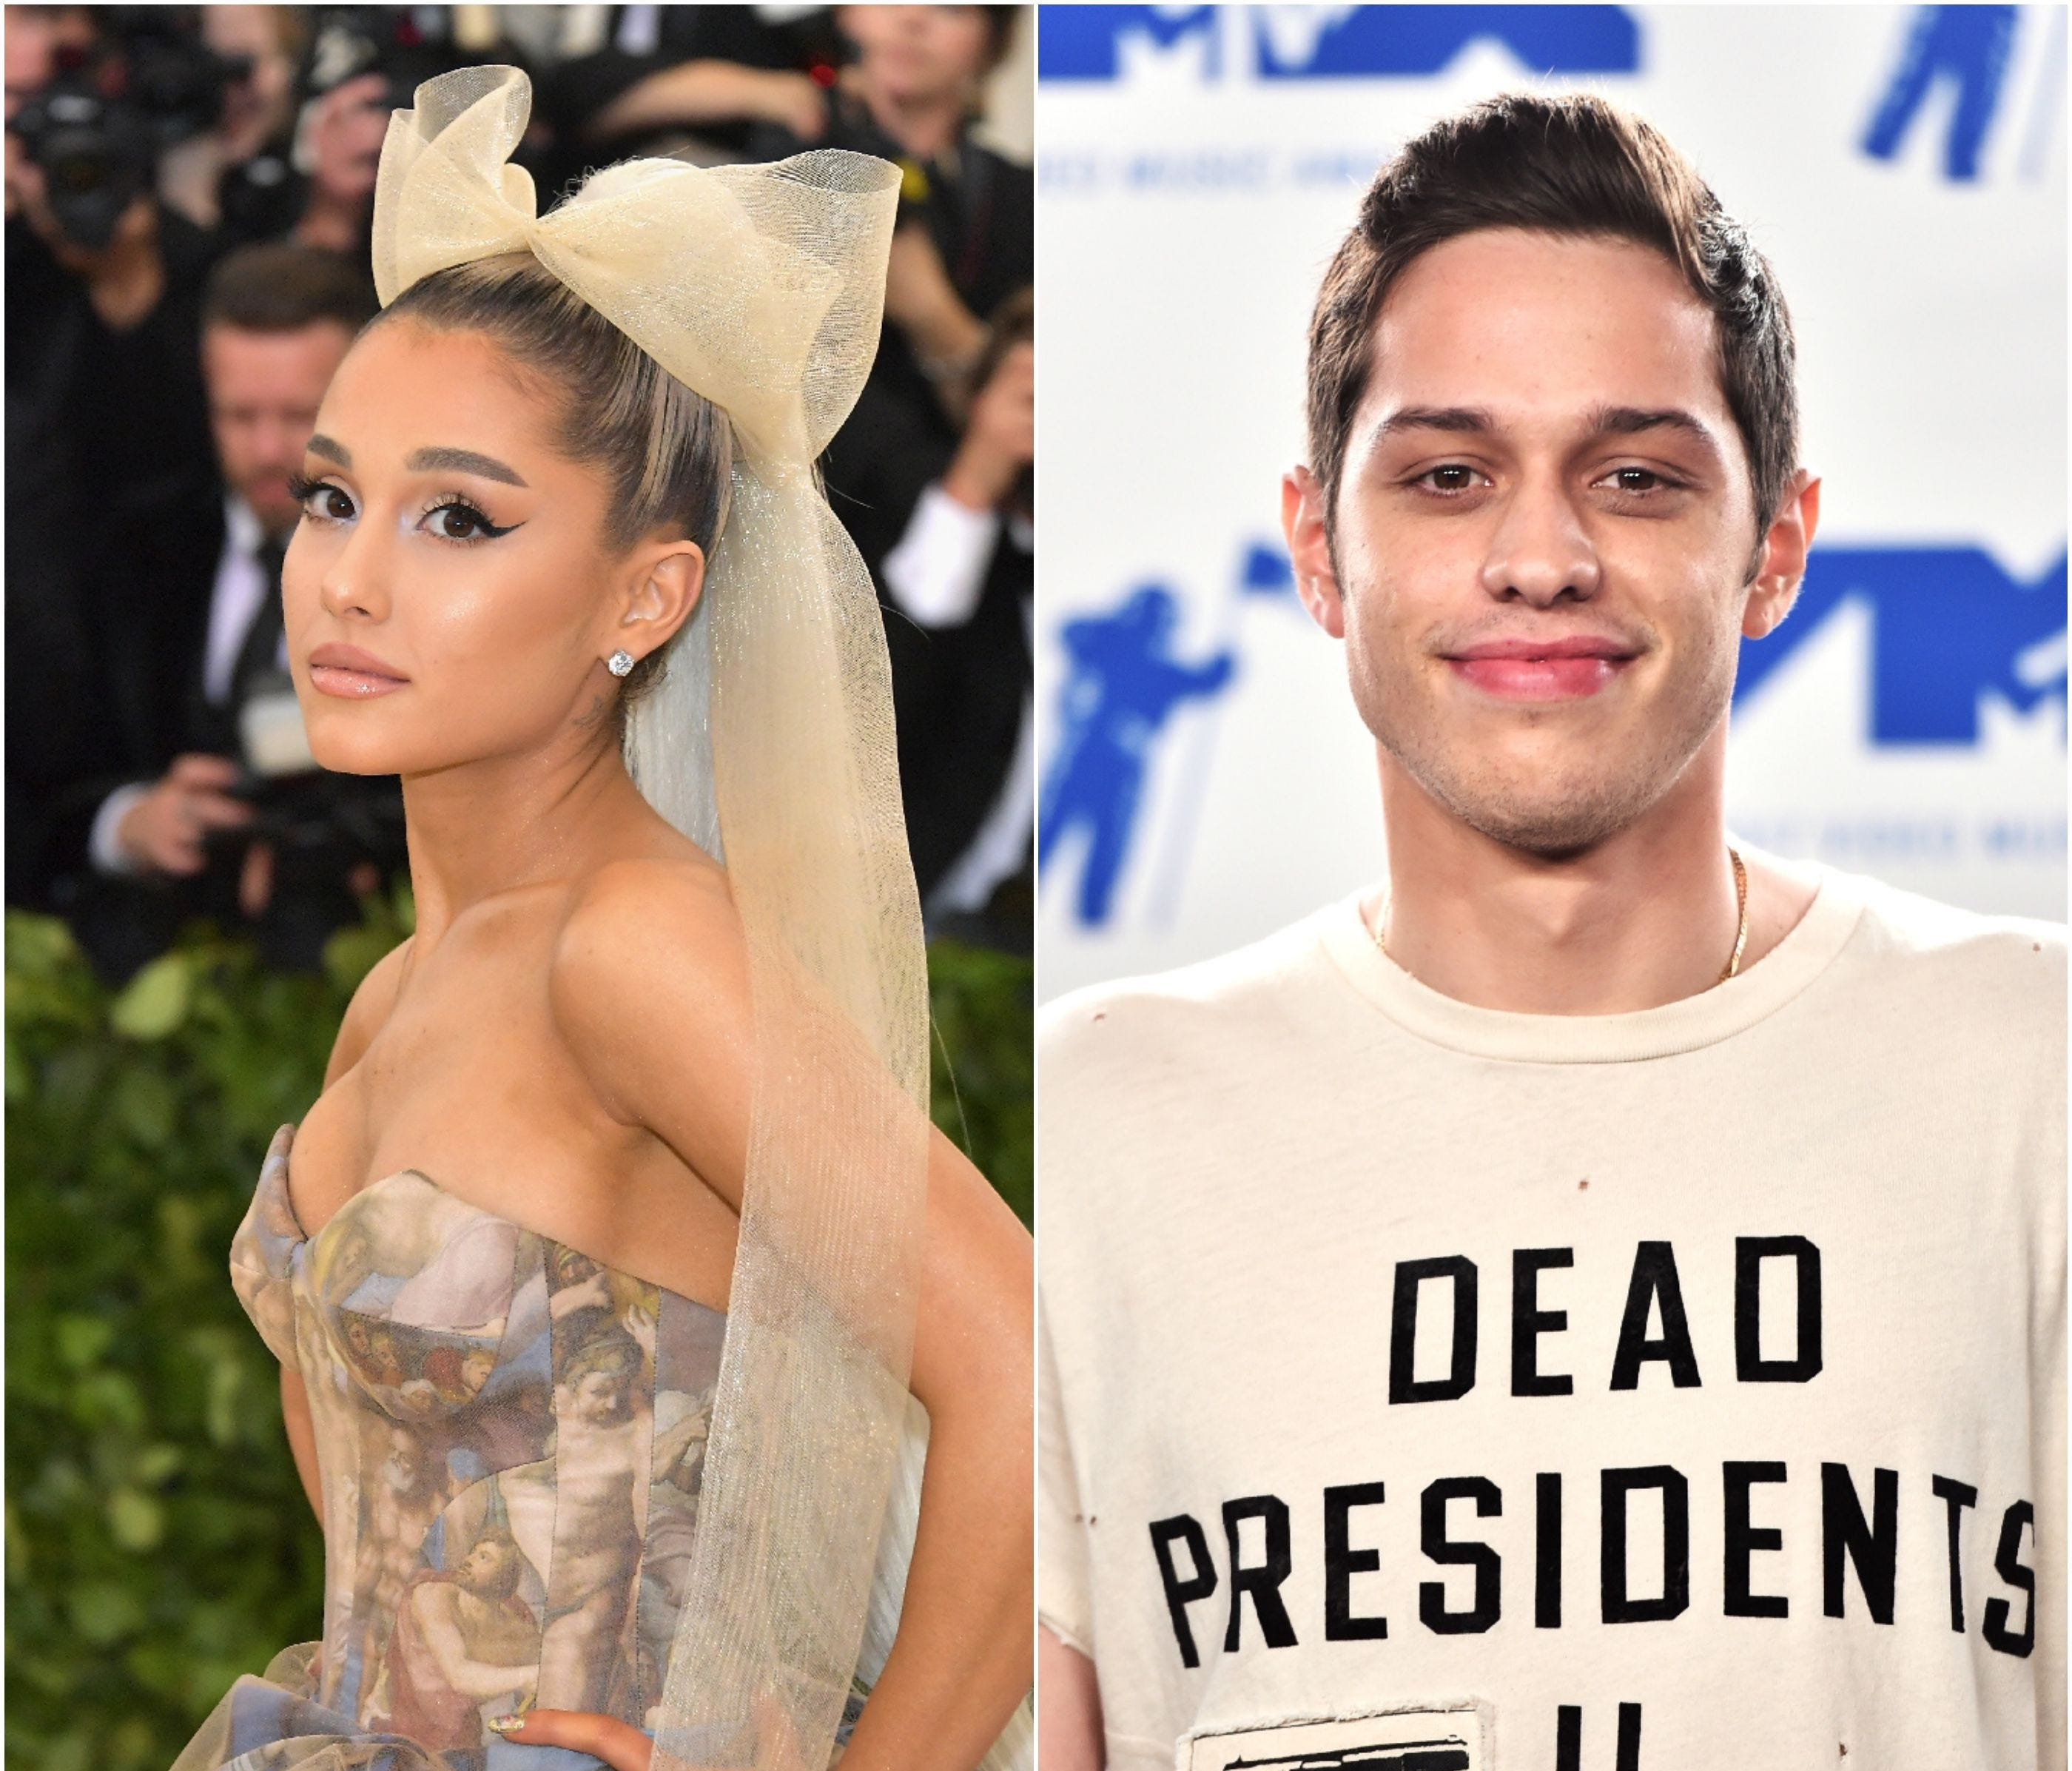 Reports are swirling that singer Ariana Grande and 'Saturday Night Live' cast member Pete Davidson are engaged after just weeks of dating. But they're hardly the first celebrity couple in a rush to put a ring on it or dash to the altar. Click forward